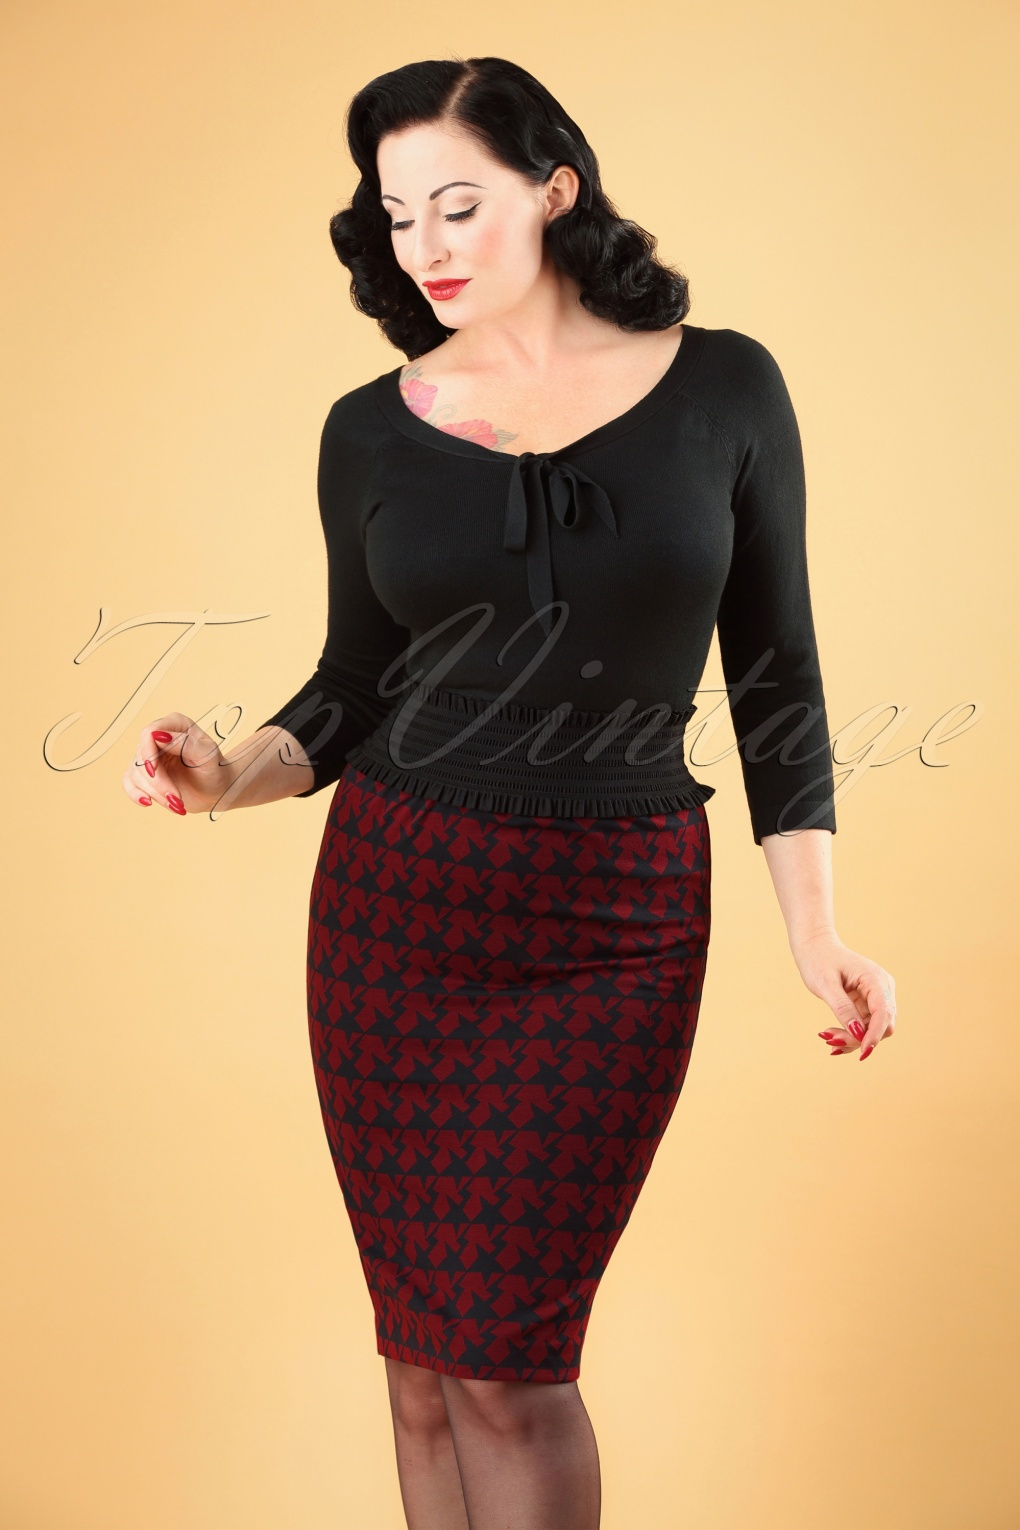 Retro Skirts: Vintage, Pencil, Circle, & Plus Sizes 60s Winters Star Pencil Skirt in Red £43.57 AT vintagedancer.com